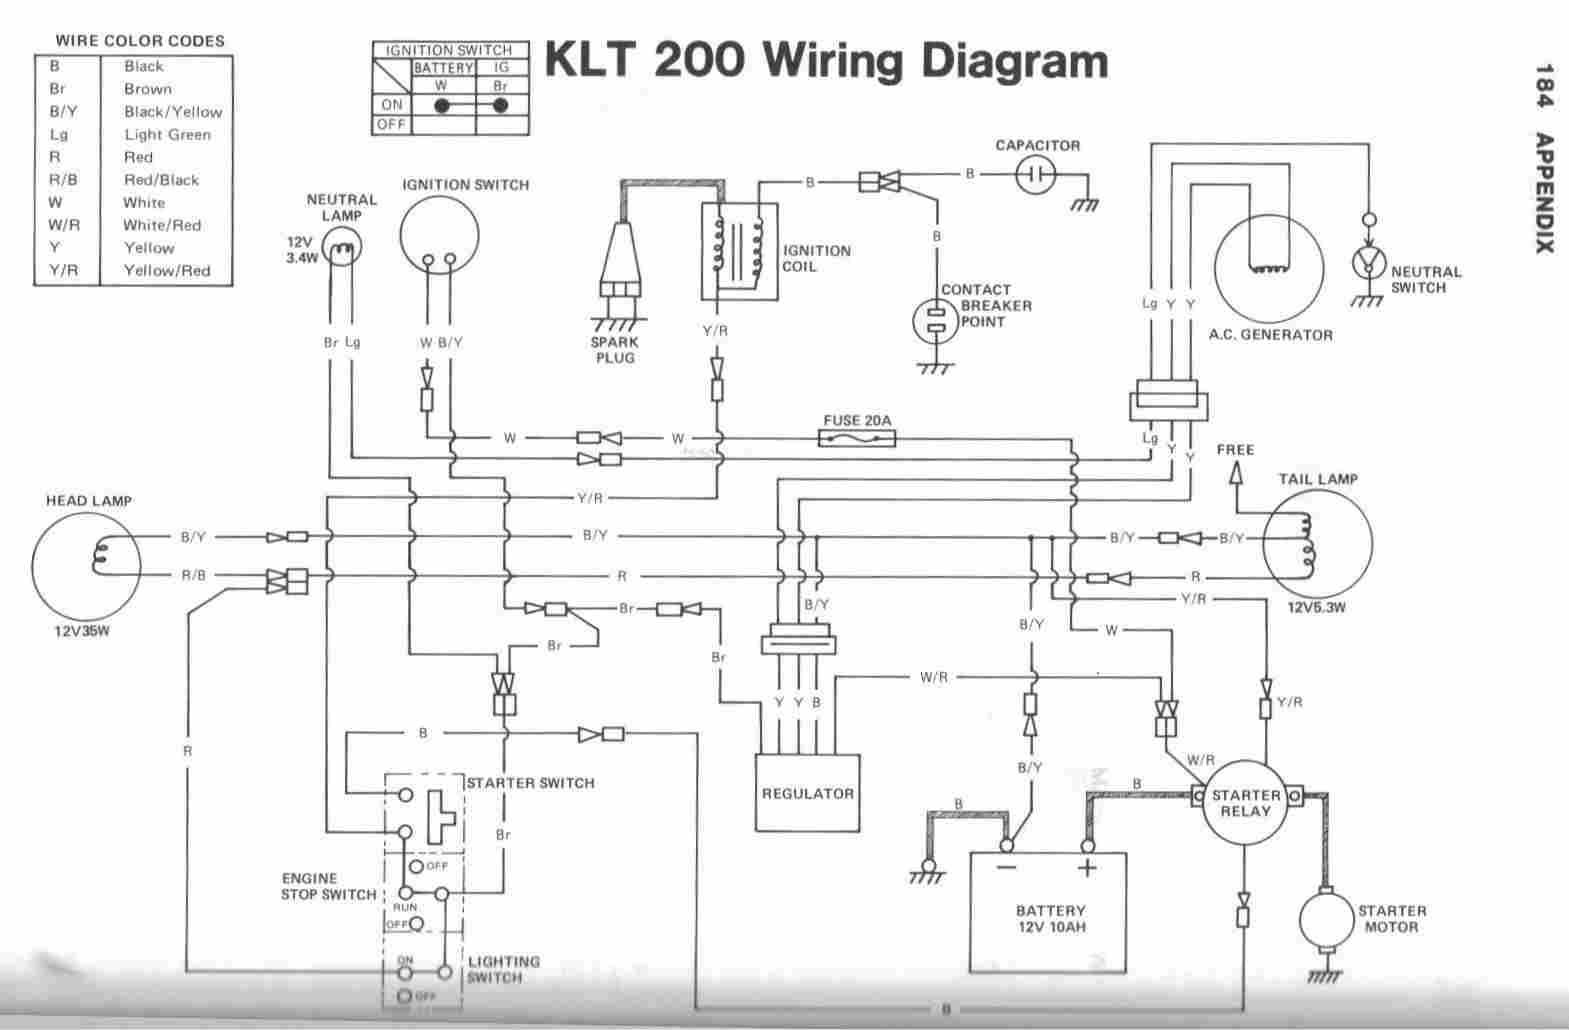 pin way switch wiring diagram electrical pinterest on